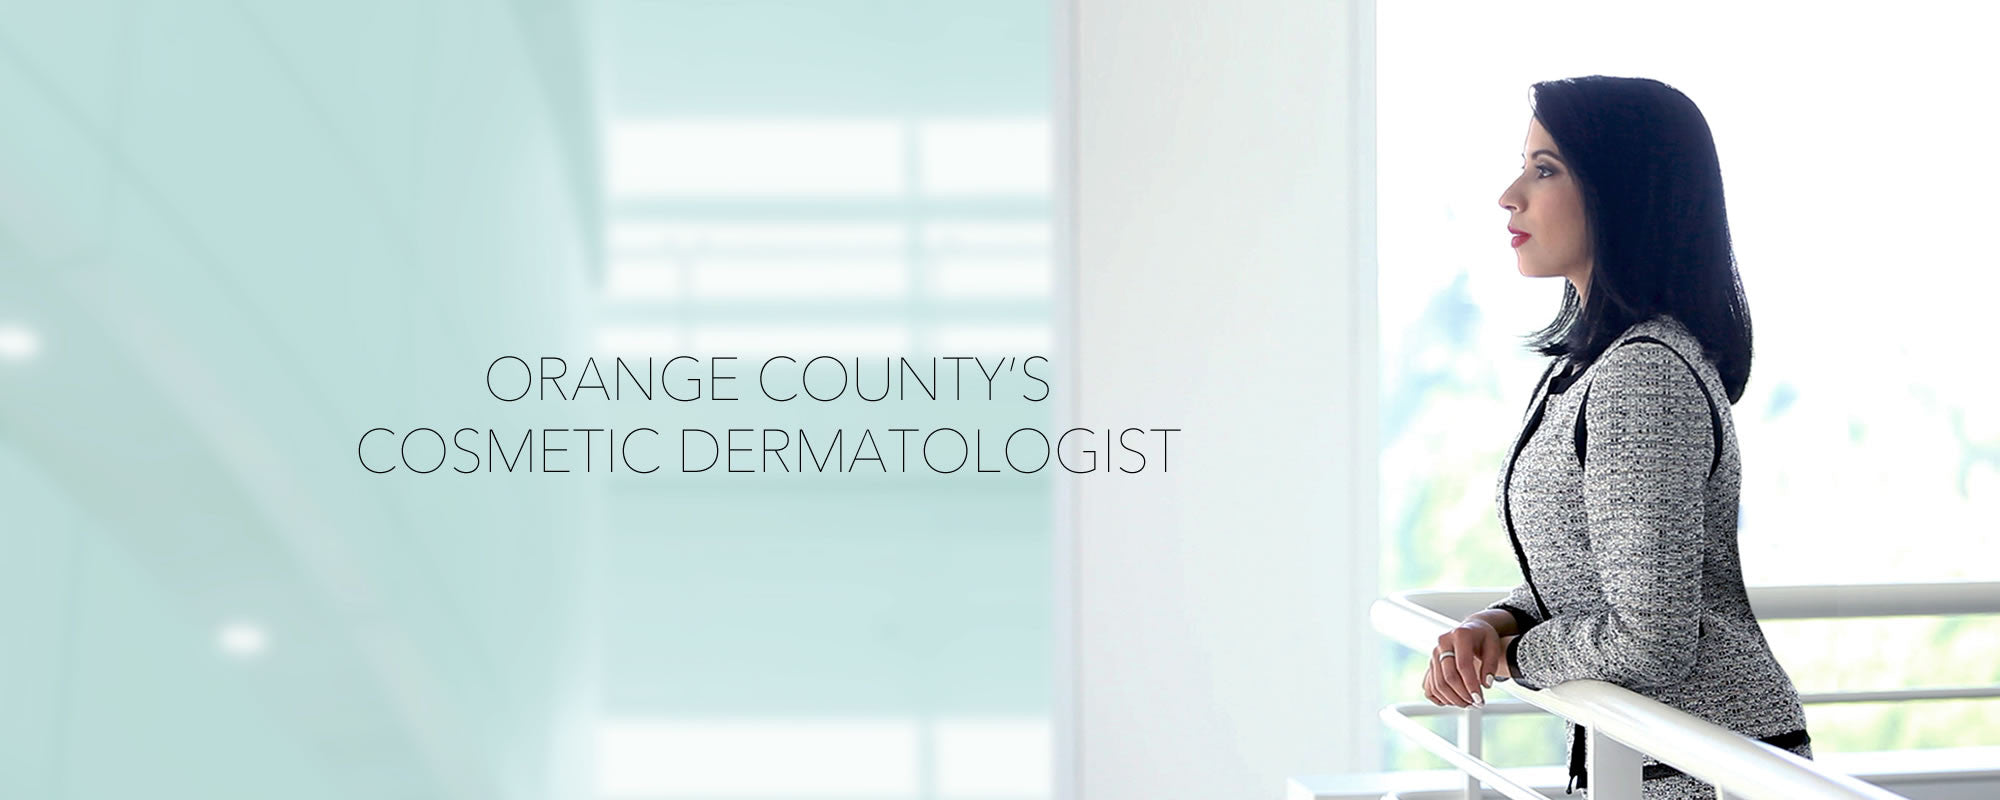 Orange County's Cosmetic Dermatologist